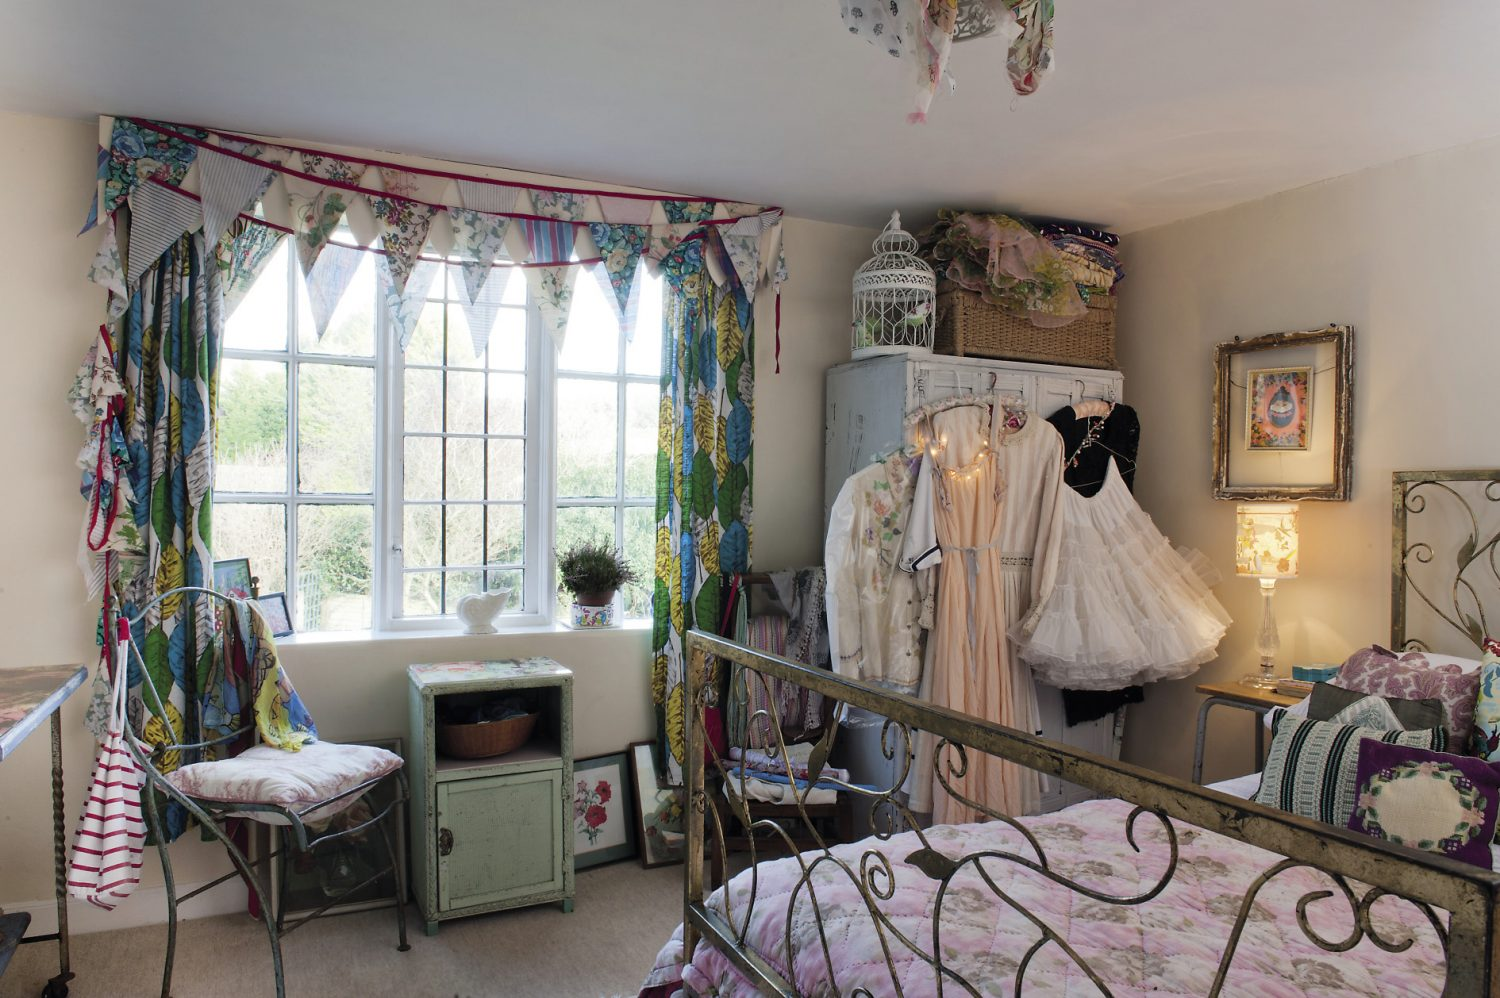 """"""" I buy a lot of things from Hayley at 'Little Treasures' in Hastings Old Town,"""" says Laura, """"she finds some amazing things and I love to go there and try all sorts of things on."""""""